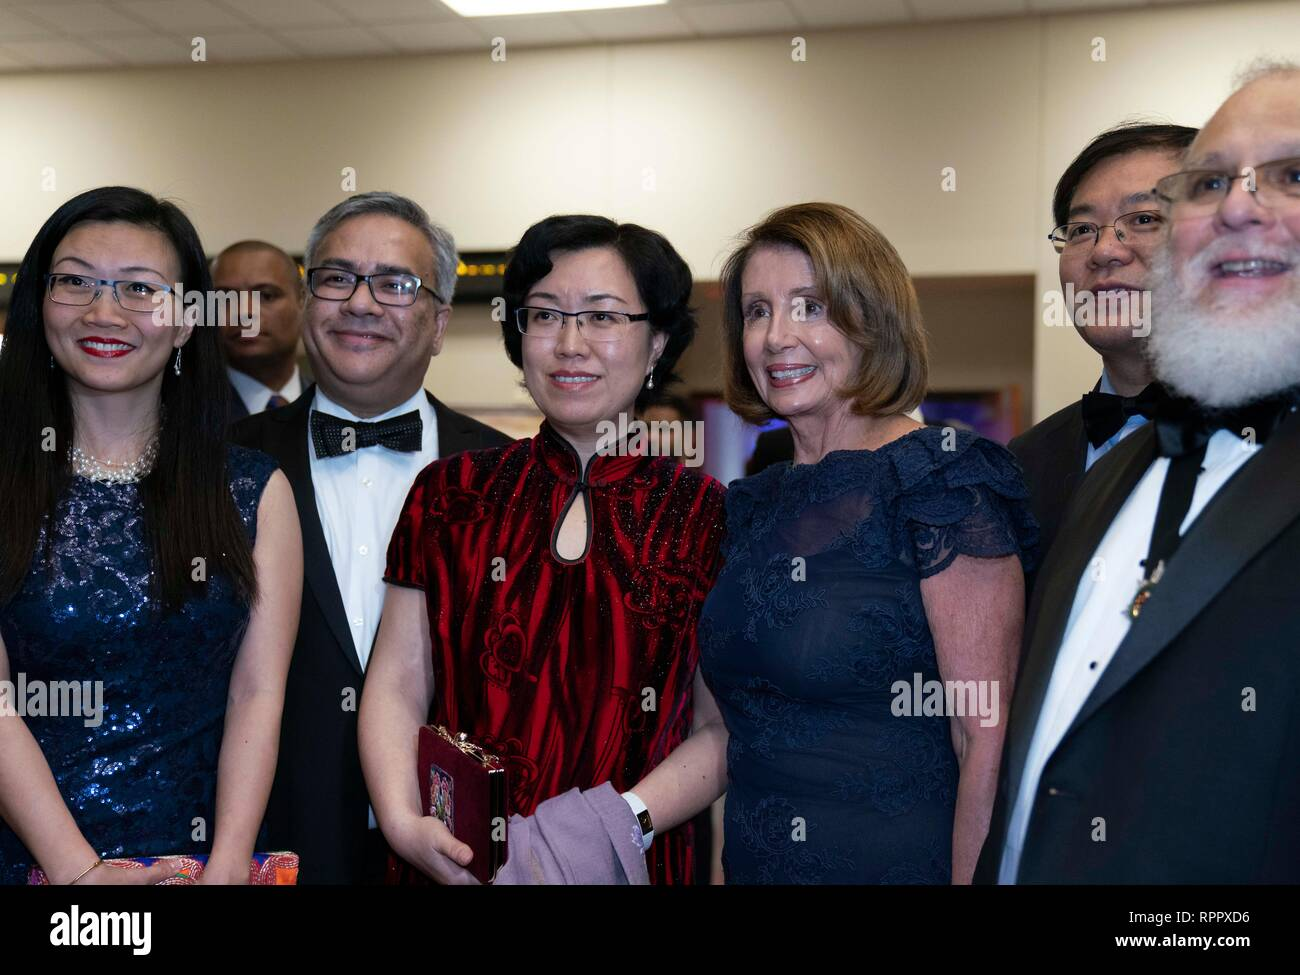 Speaker of the United States House of Representatives Nancy Pelosi poses at a cocktail party as an honored guest of the George Washington's Birthday celebration in the border city of Laredo, Texas. - Stock Image